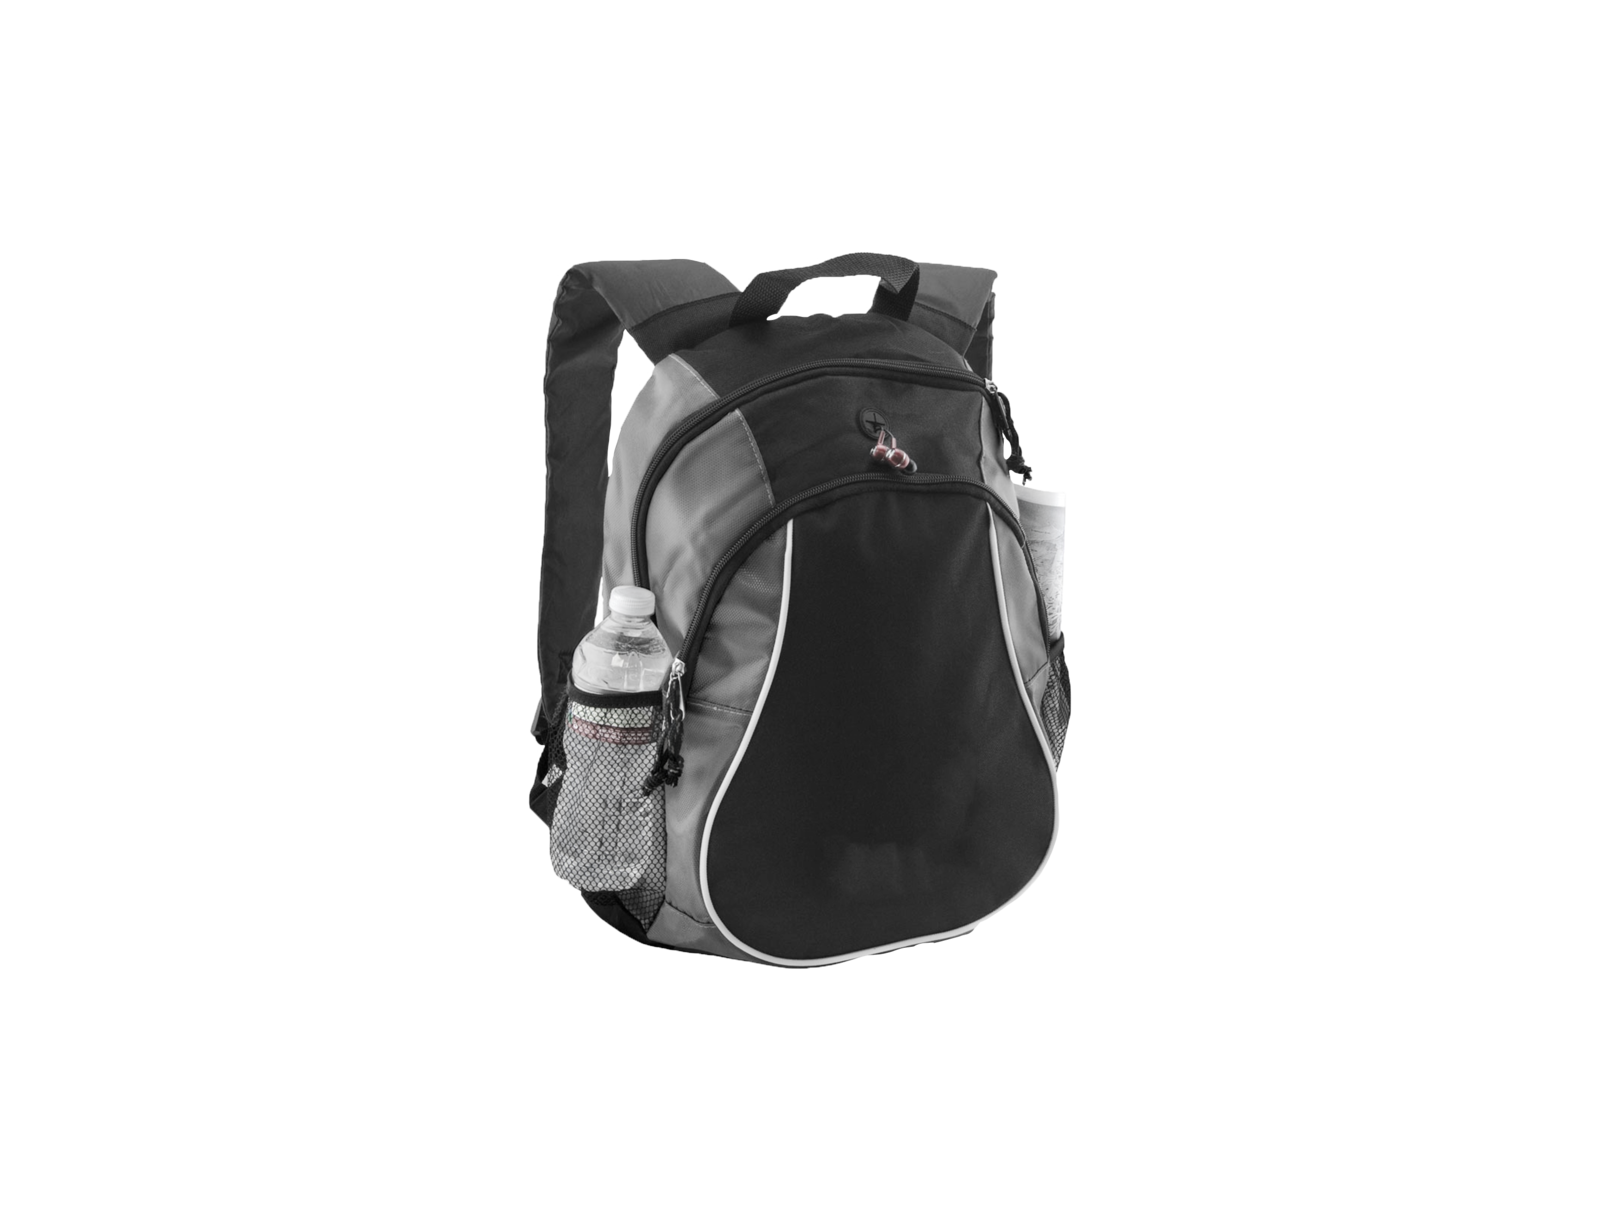 Backpack-Presentation 2